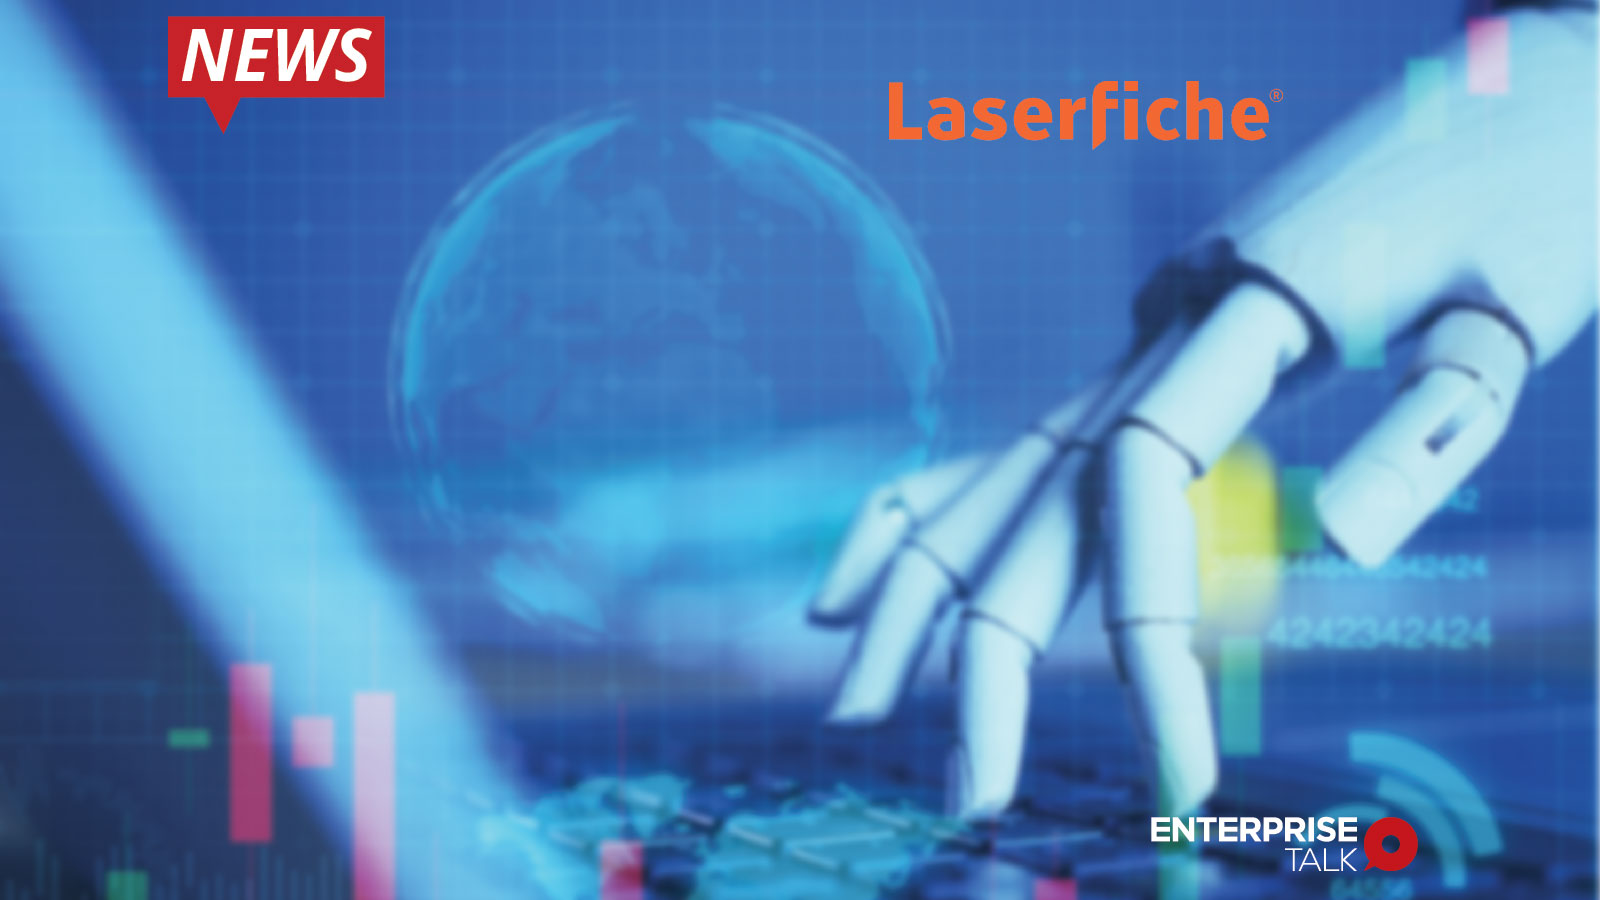 Laserfiche, Workflow Bots, Robotic Process Automation Capabilities, RPA, Workflow Automation